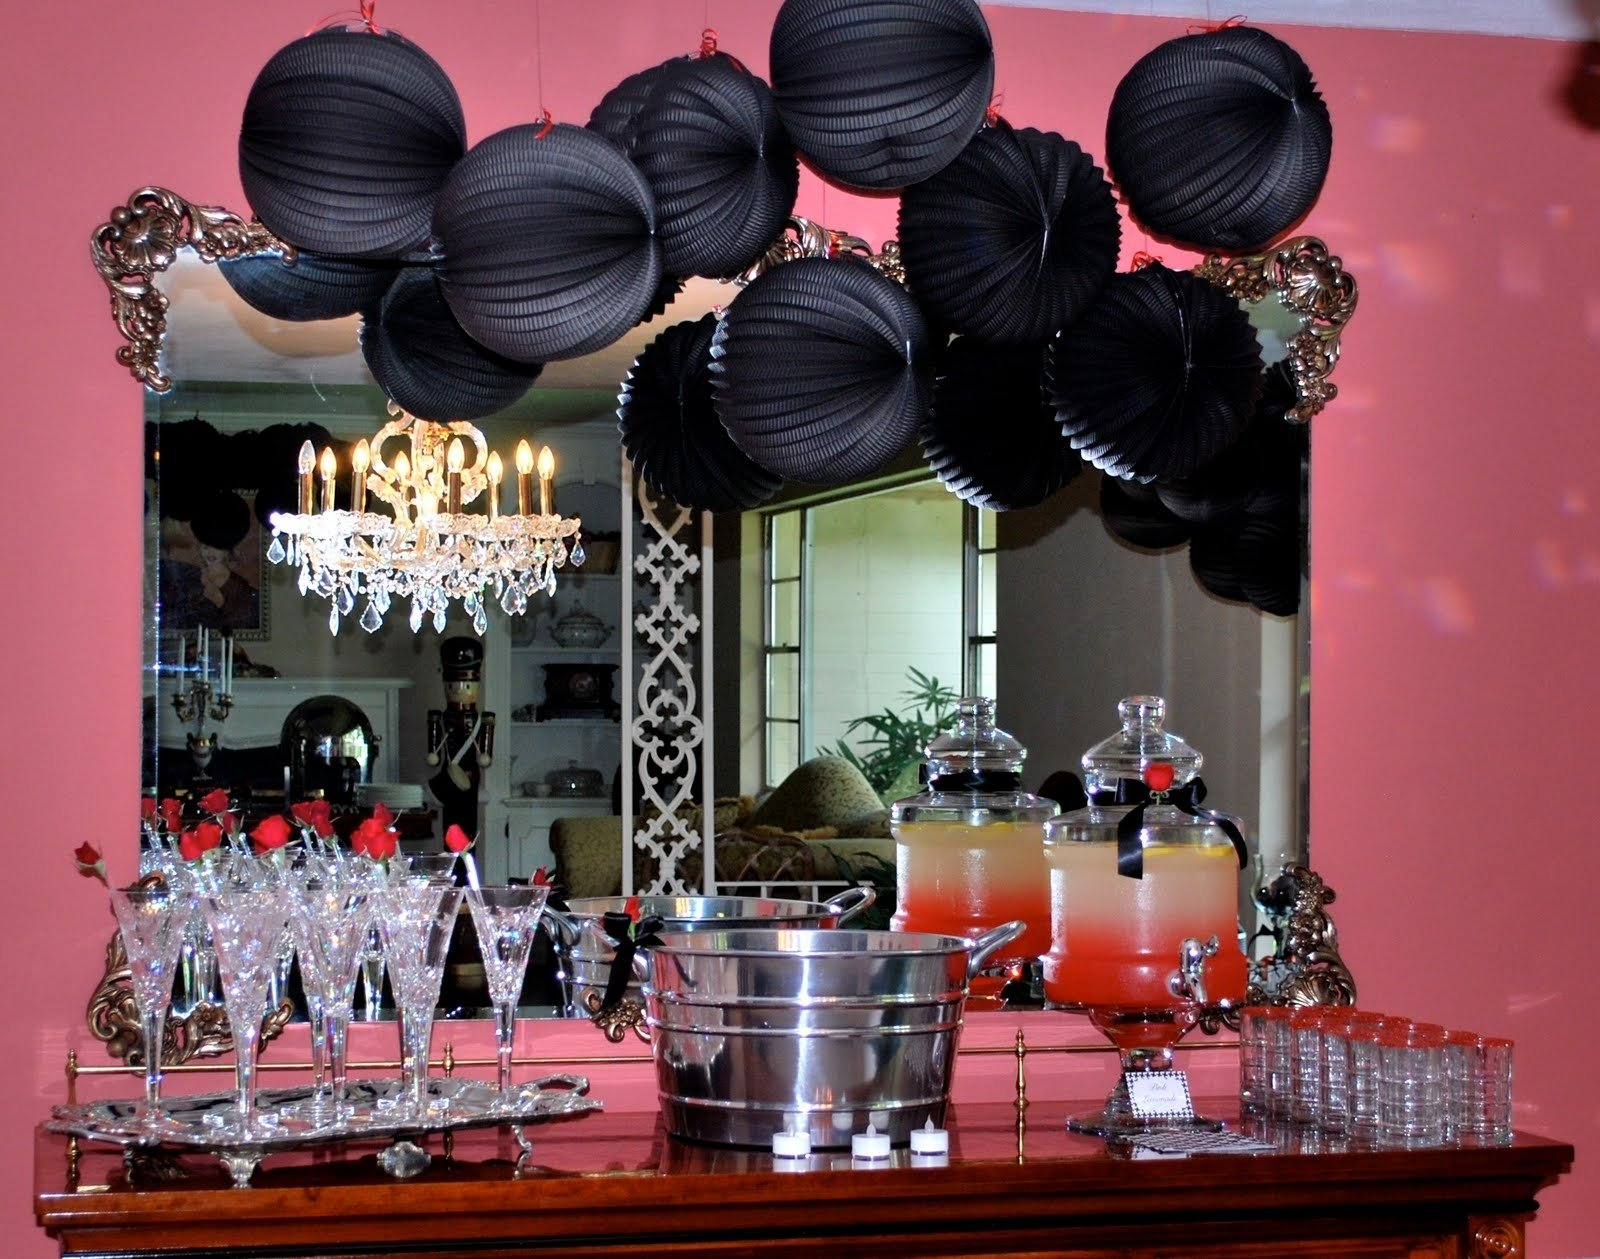 10 Lovely Ideas For 40Th Birthday Party Female some steps for making the 40th birthday party decorations e2 80 94 1 2020